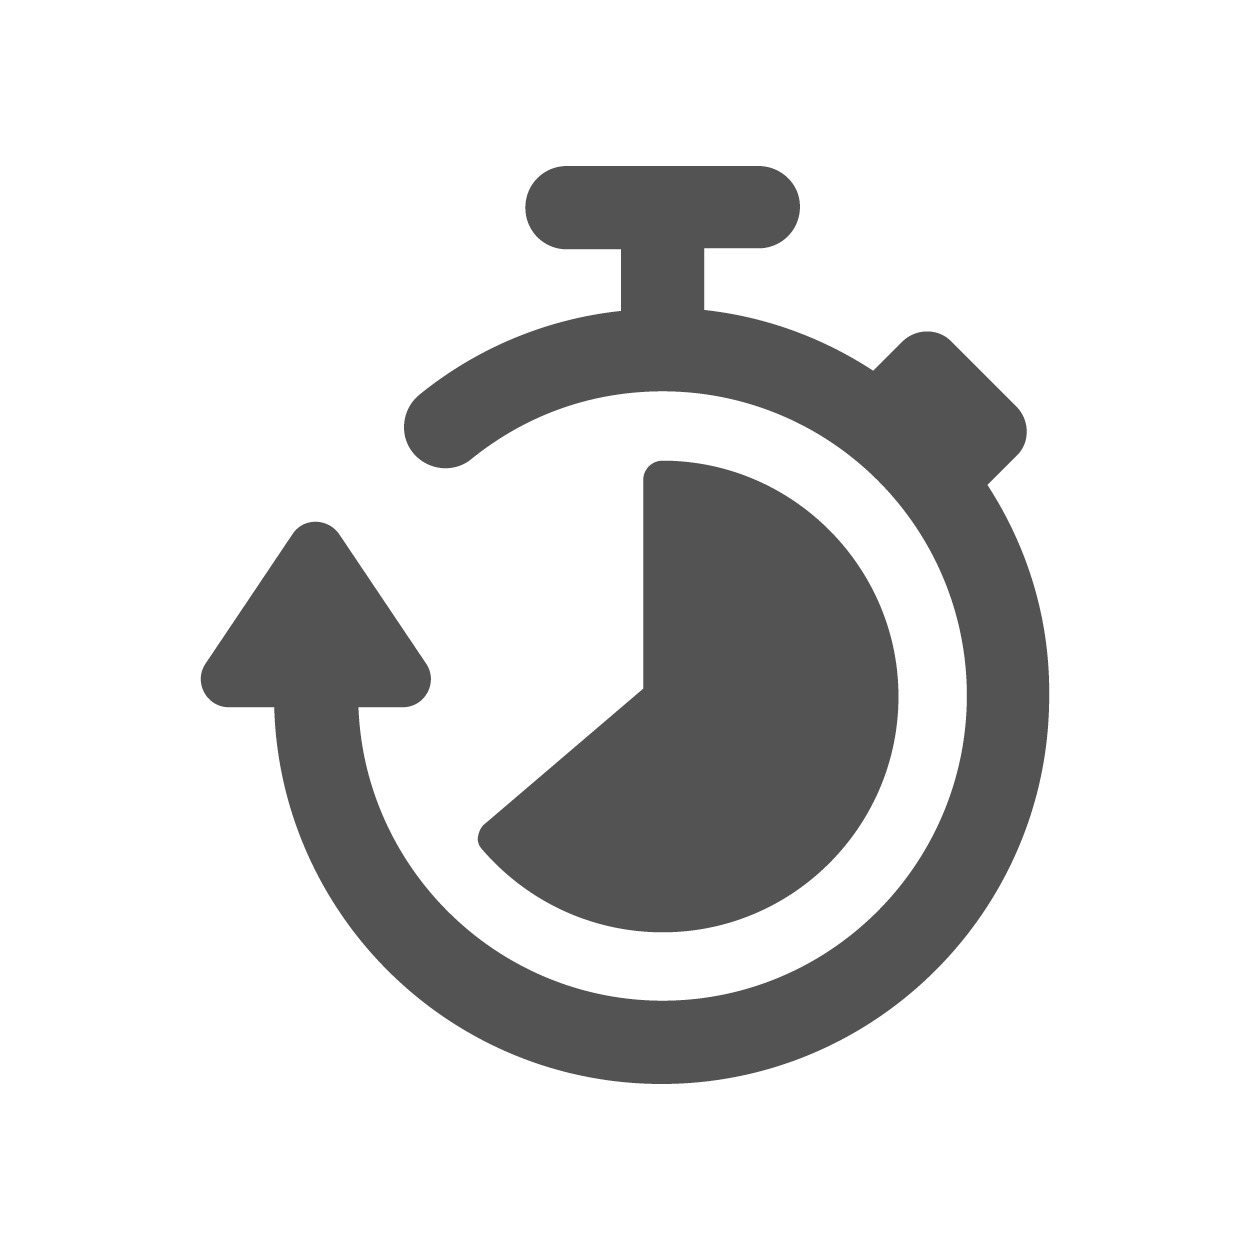 Time by Adrien Coquet from the Noun Project